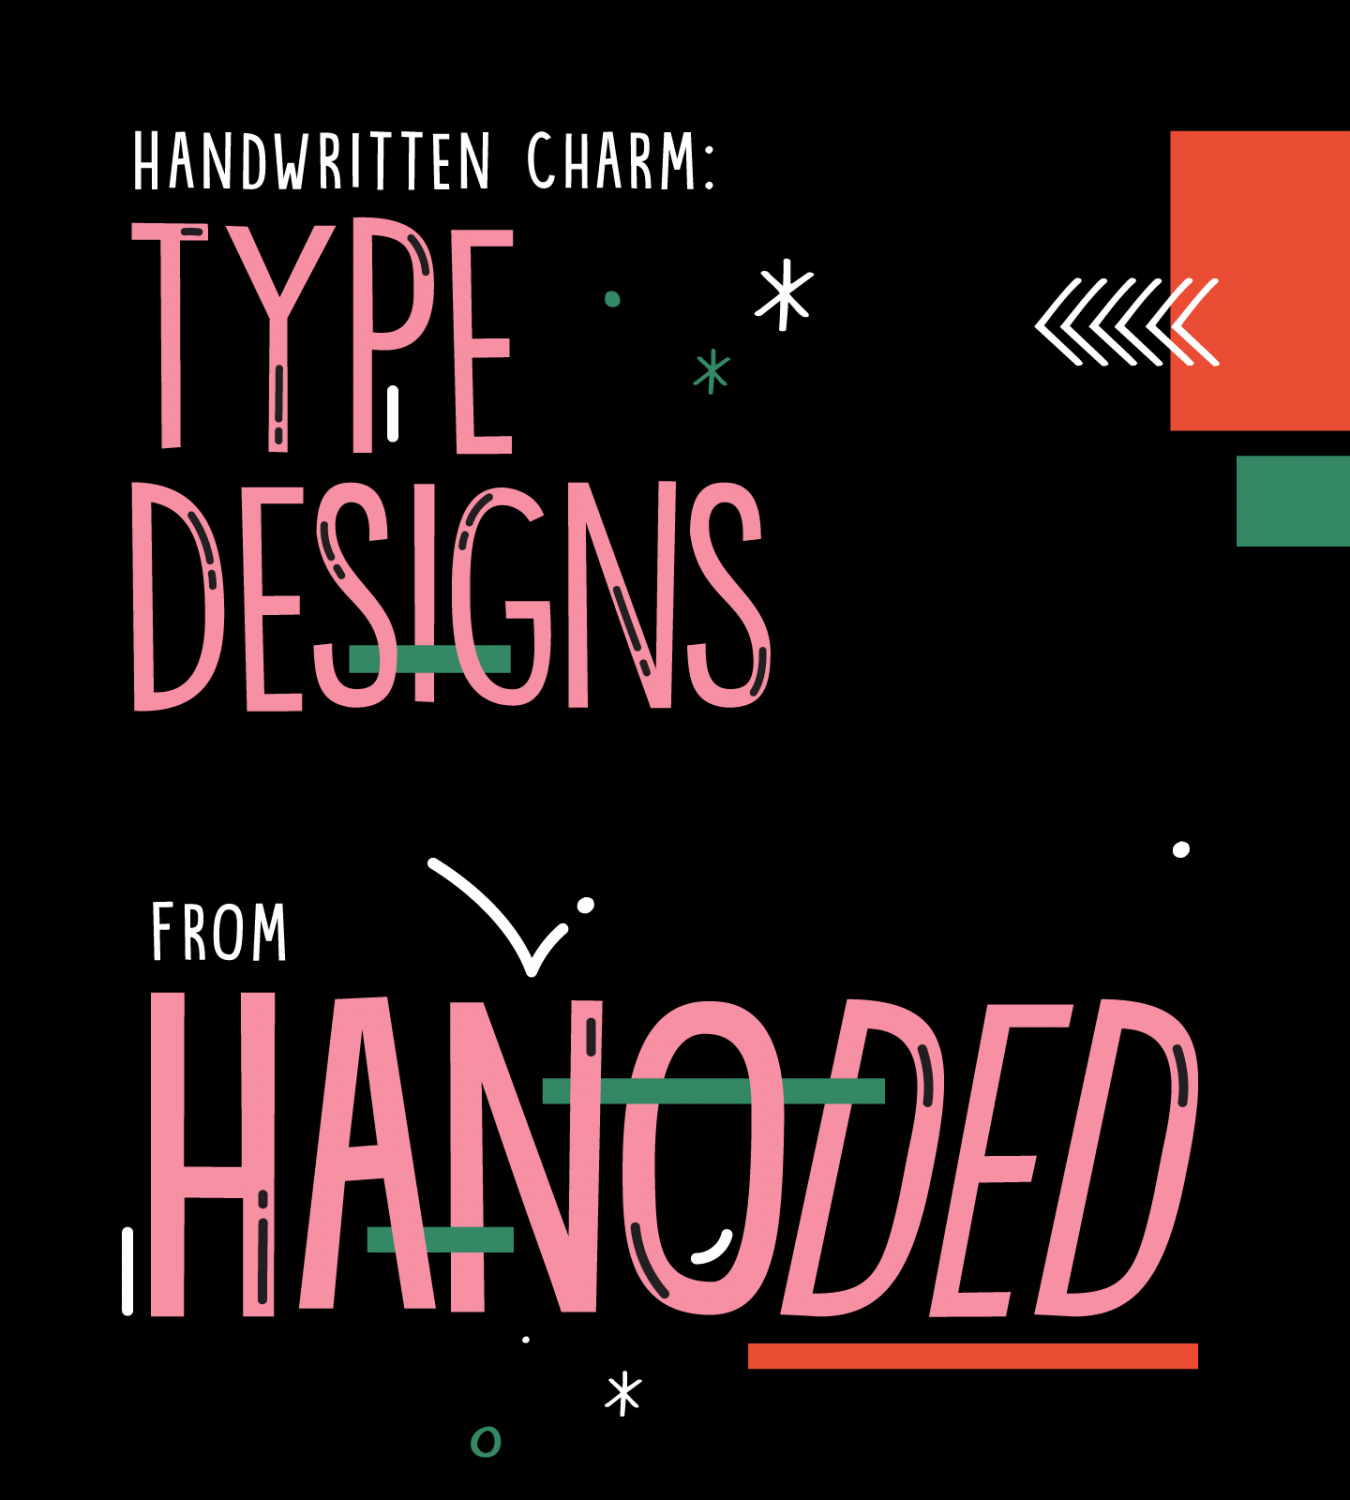 Handwritten Charm: Type Designs From Hanoded